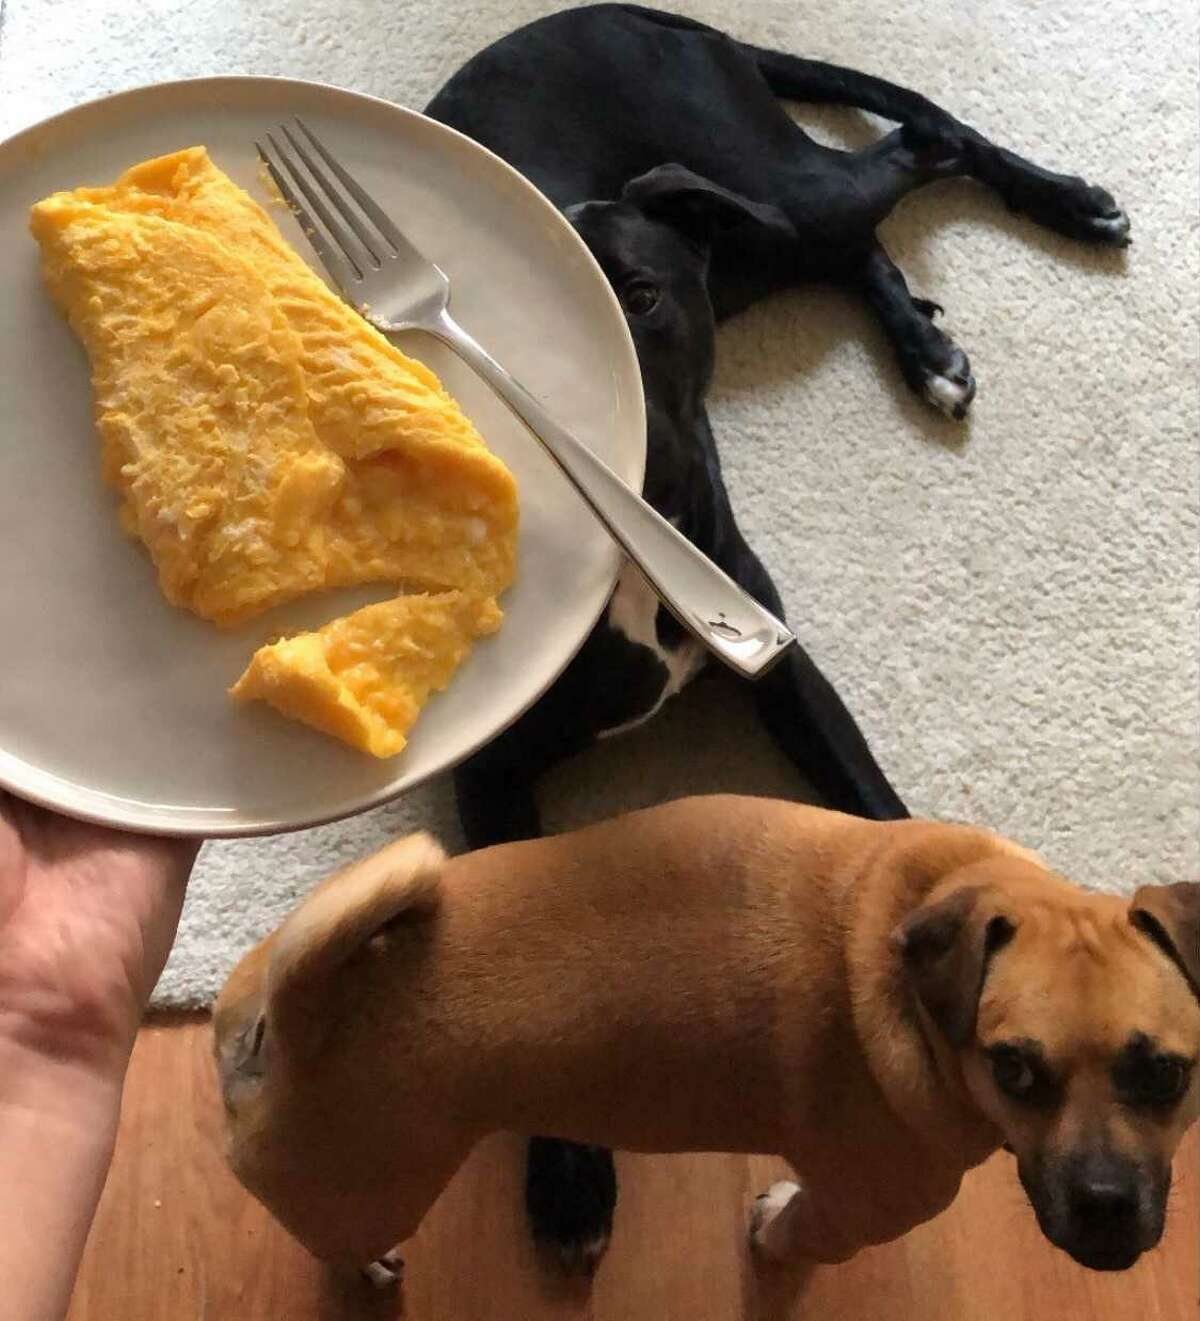 My imperfect (but delicious) French omelette.